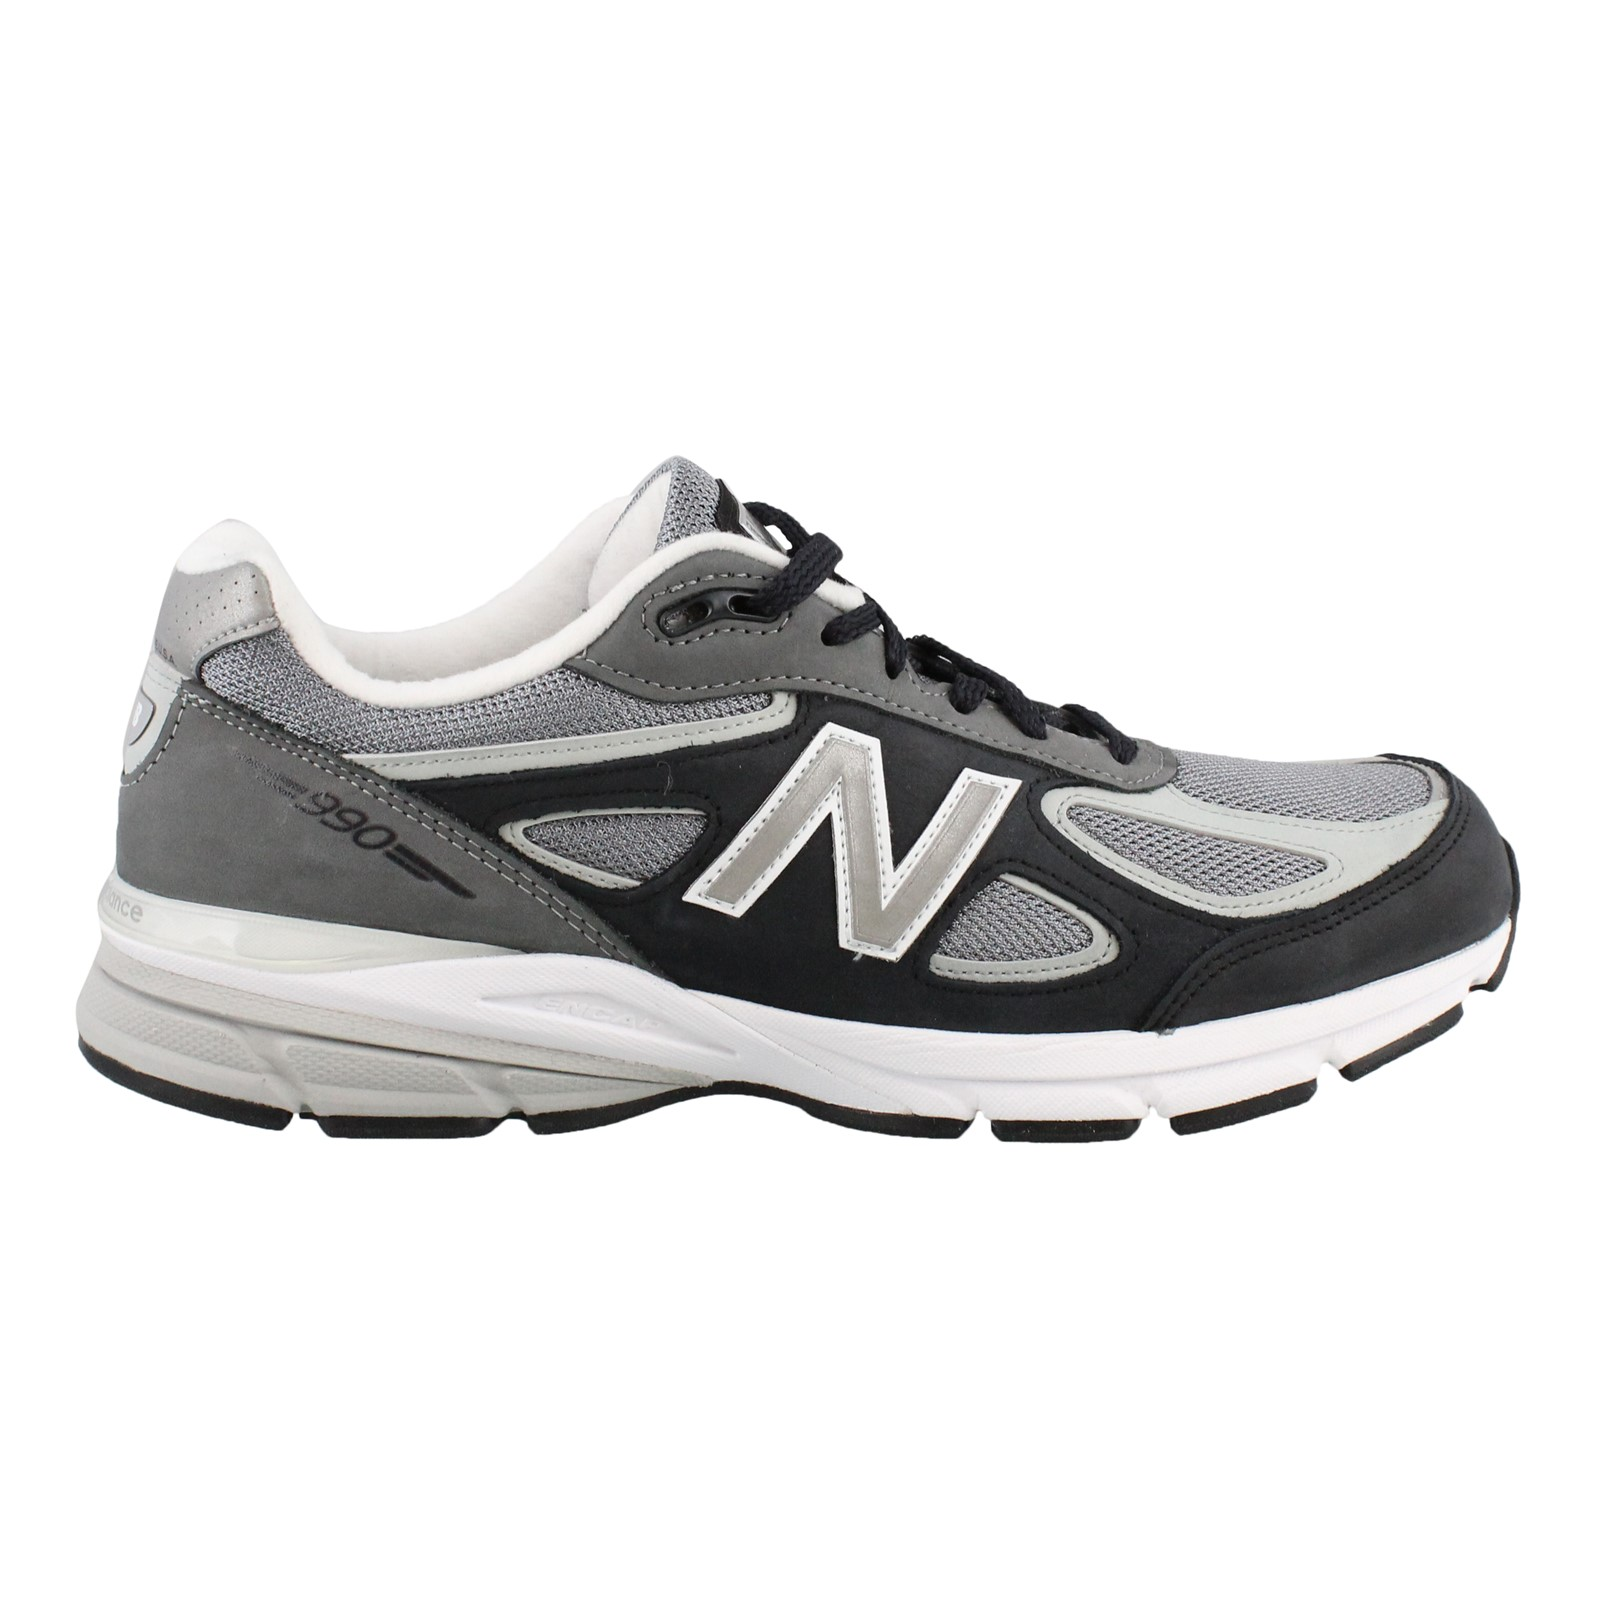 huge discount 645a0 322ee Men's New Balance, 990v4 Running Sneaker